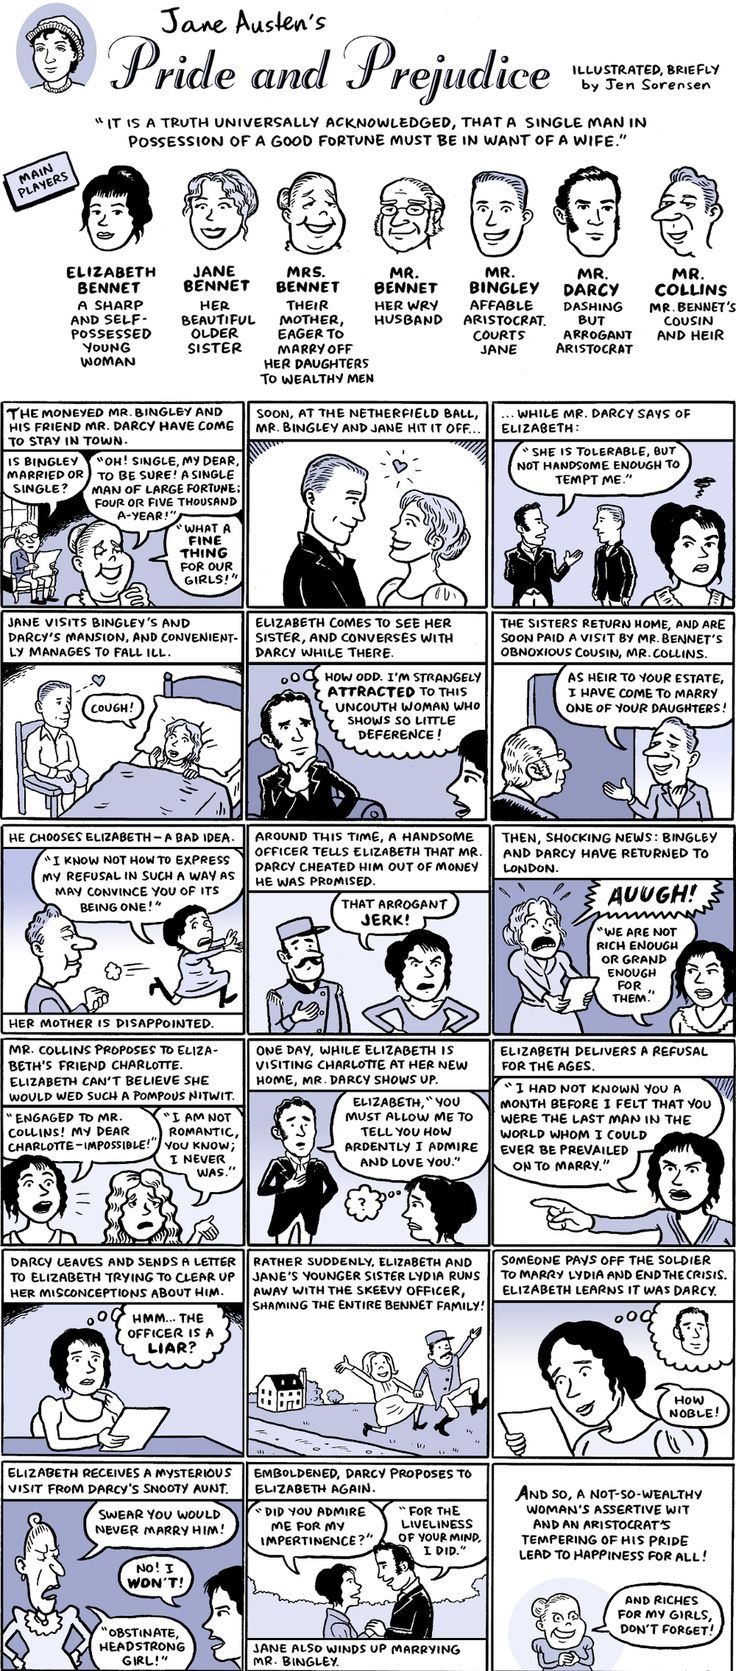 pride and prejudice class consciousness The literary elements of pride&prejudice tone pride, and reputation/class pride is an obviouse theme because pride and prejudice is plot and character based, which leads perfectly to the high horse pride of mrdarcy and the independent pride of elizabeth.